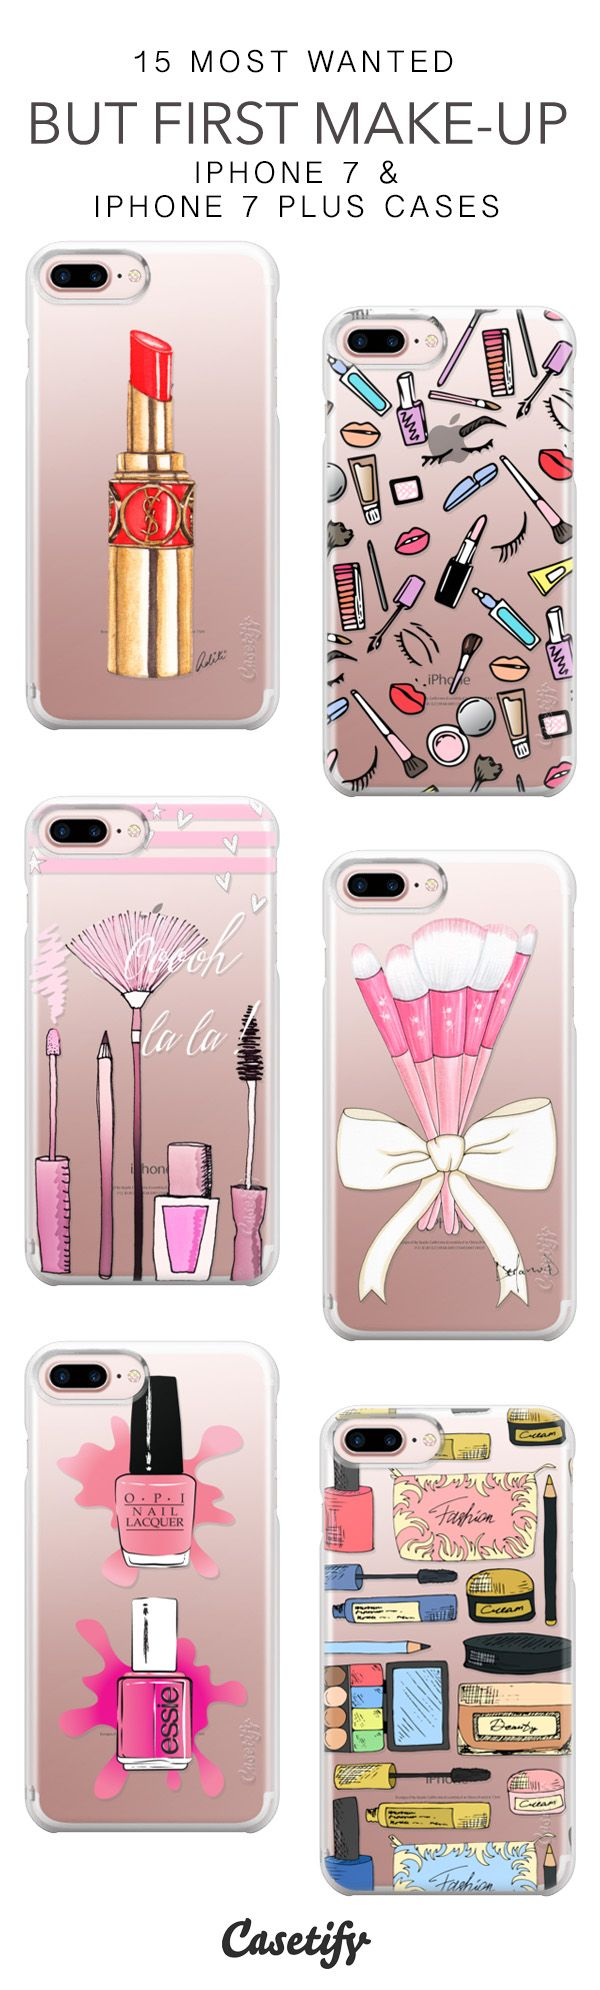 15 Most Wanted But First, Makeup Protective iPhone 7 Cases and iPhone 7 Plus Cases. More Beauty iPhone case here > https://www.casetify.com/collections/top_100_designs#/?vc=lL02JwYE3H